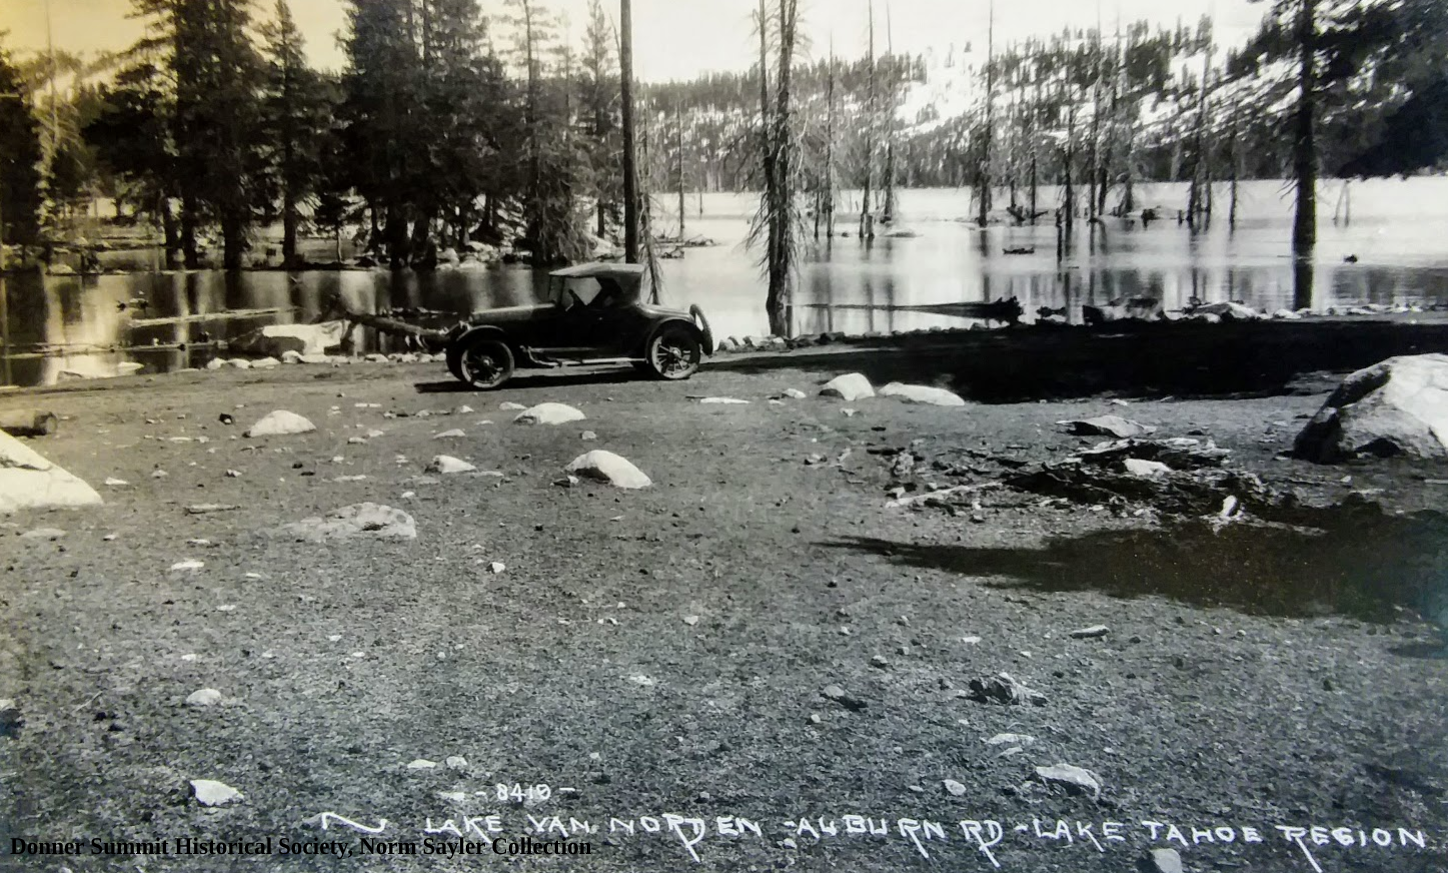 An automobile on the Lincoln Highway and a full Lake Van Norden.